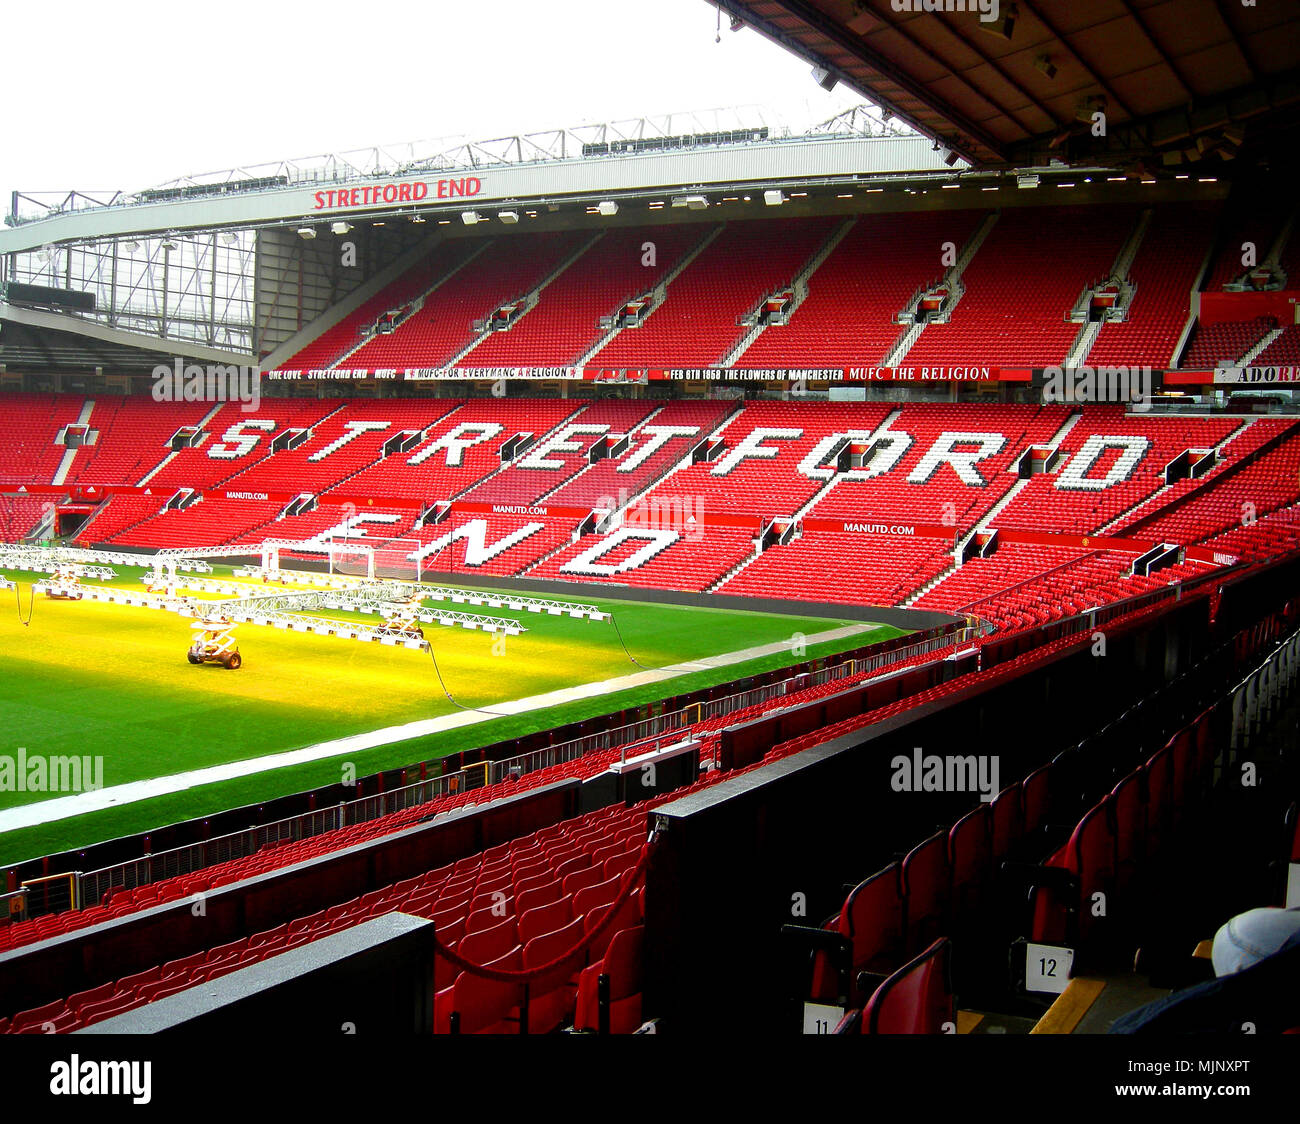 Inside Manchester United football stadium - Stock Image